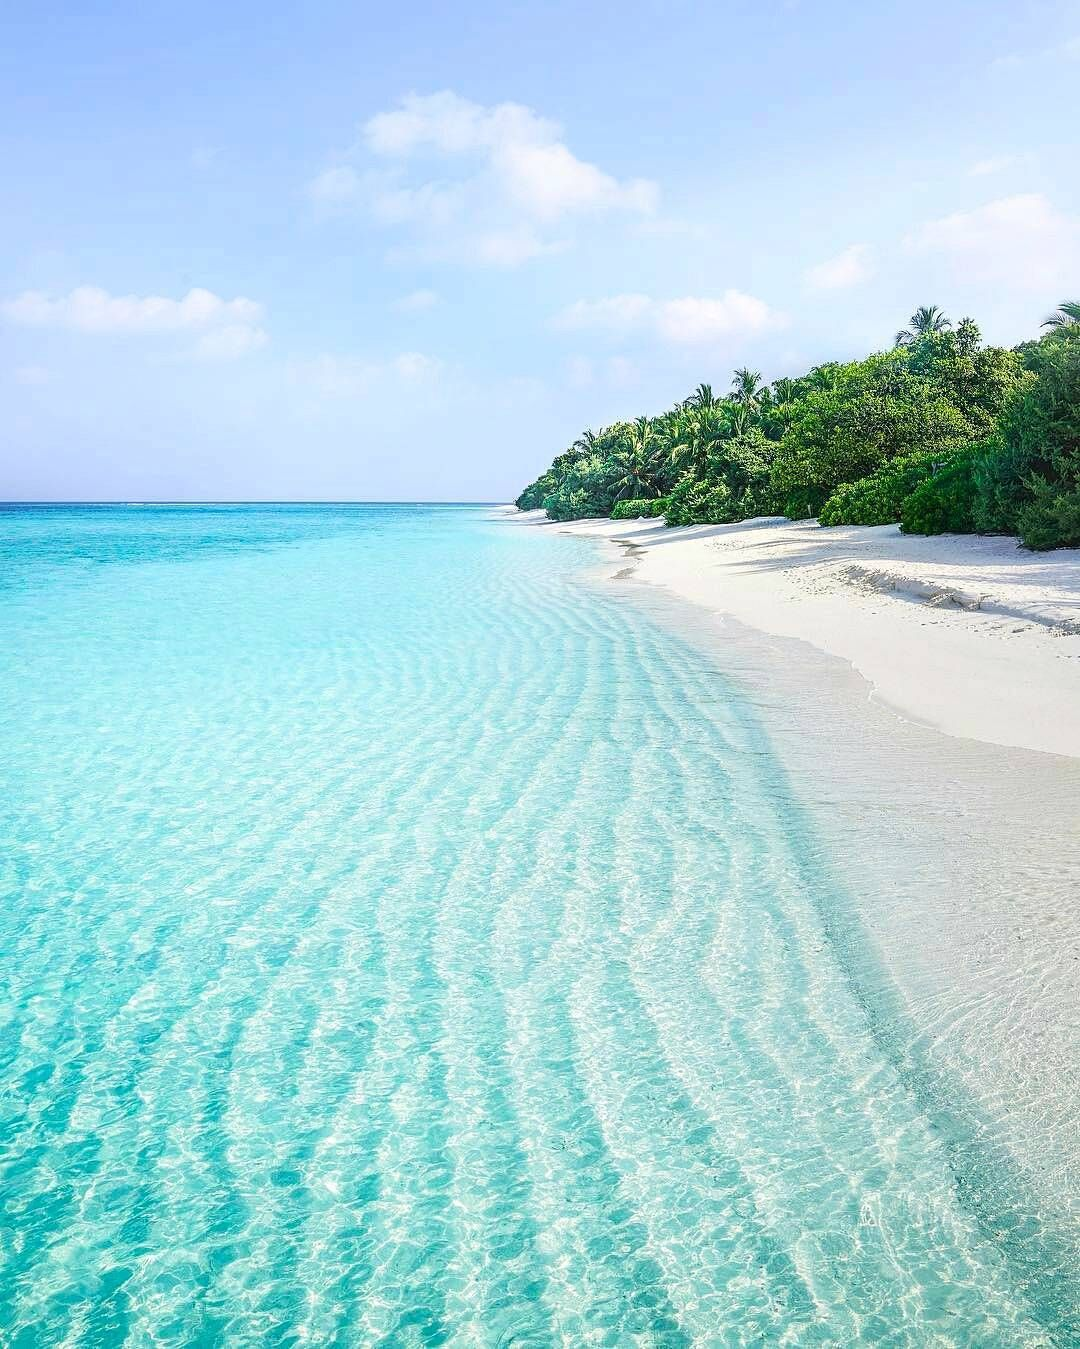 Maldives Island Beaches: The Maldives Islands #Maldives Http://tracking.publicidees